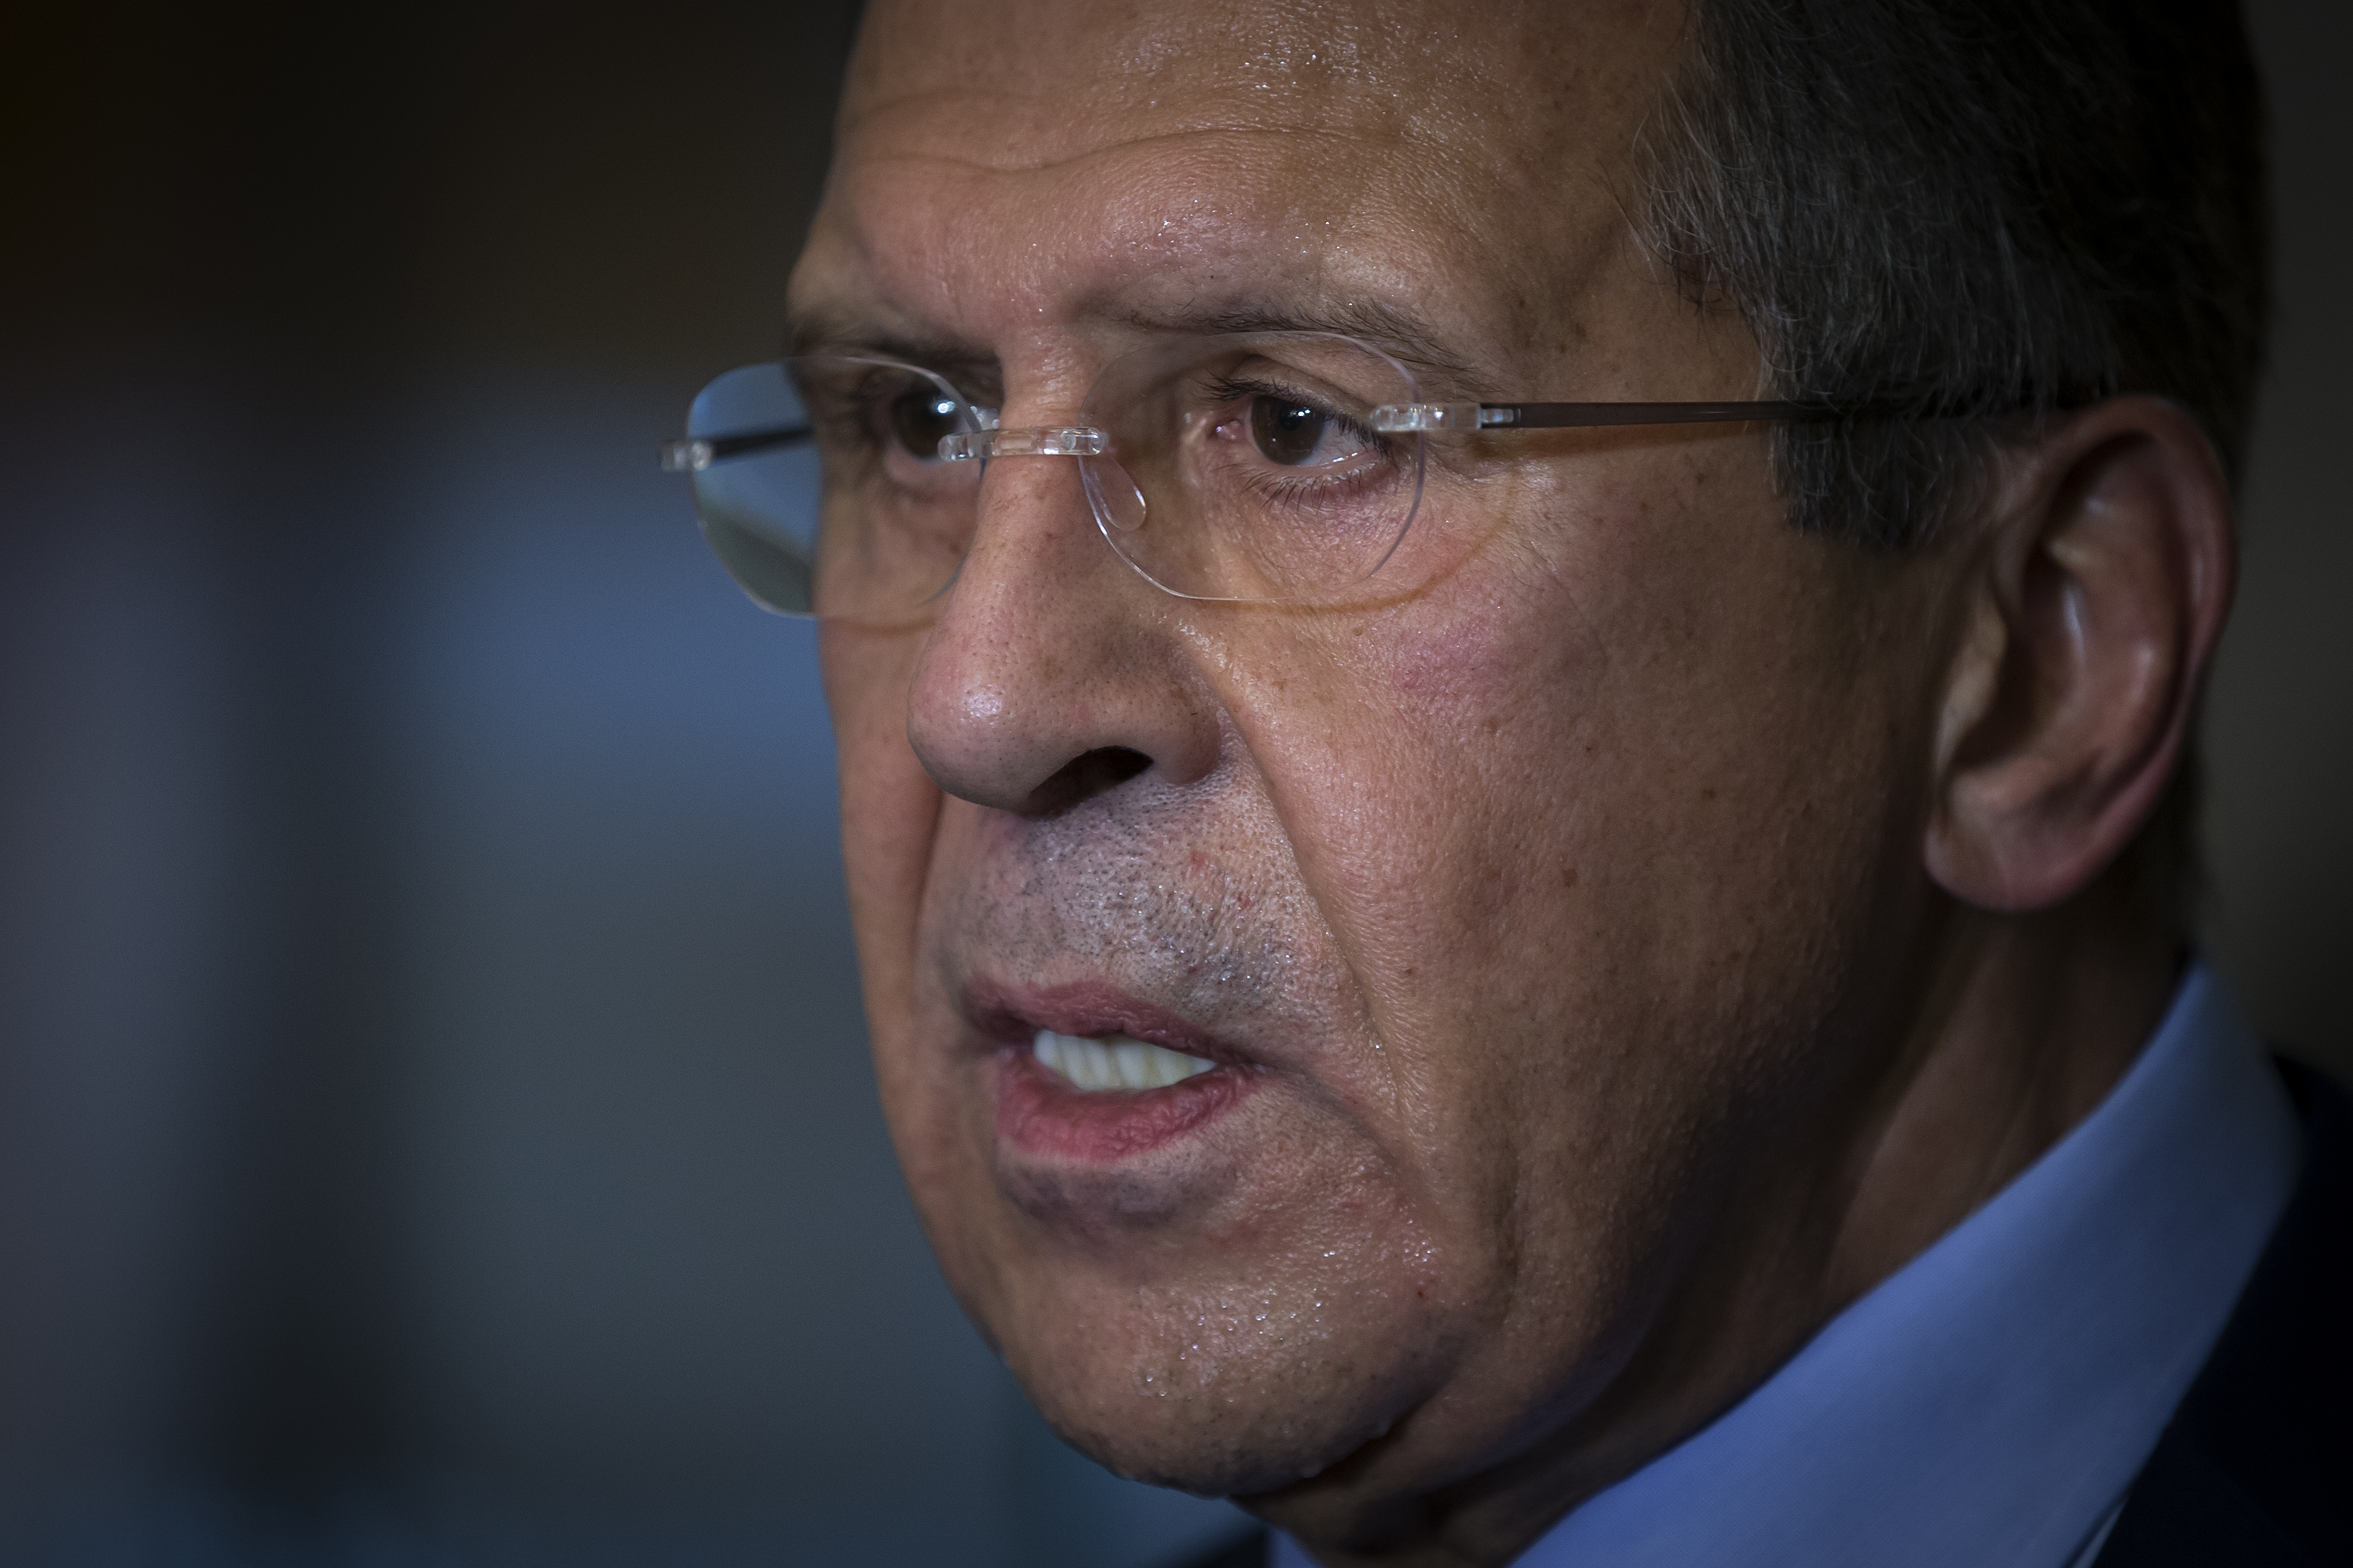 Russian Foreign Minister Sergei Lavrov says Moscow wants Syria to prepare for parliamentary and presidential elections, and he indicates his government will take firm action if necessary to move that process forward.